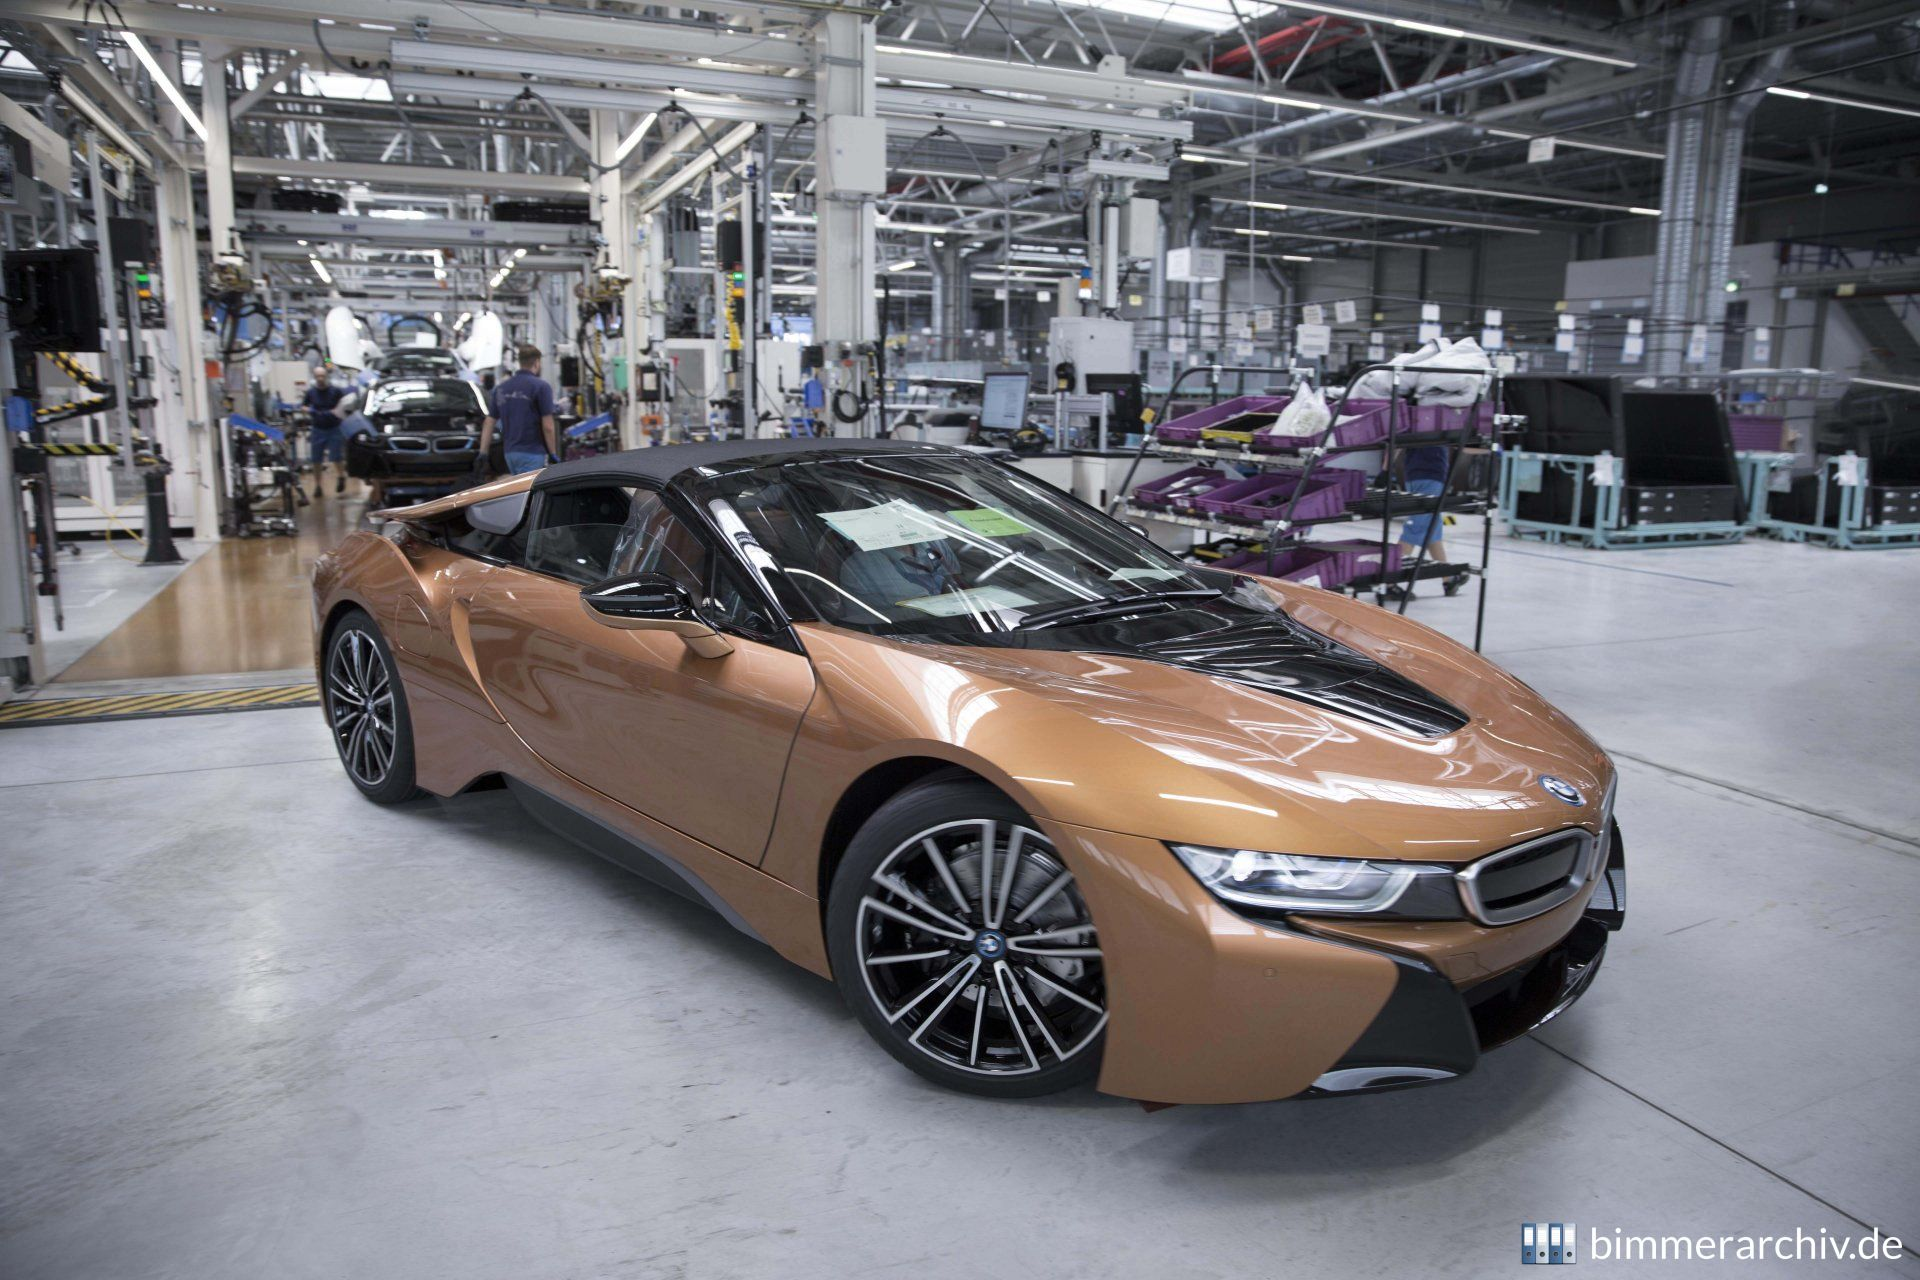 Production BMW i8 Roadster in the BMW Group Plant Leipzig